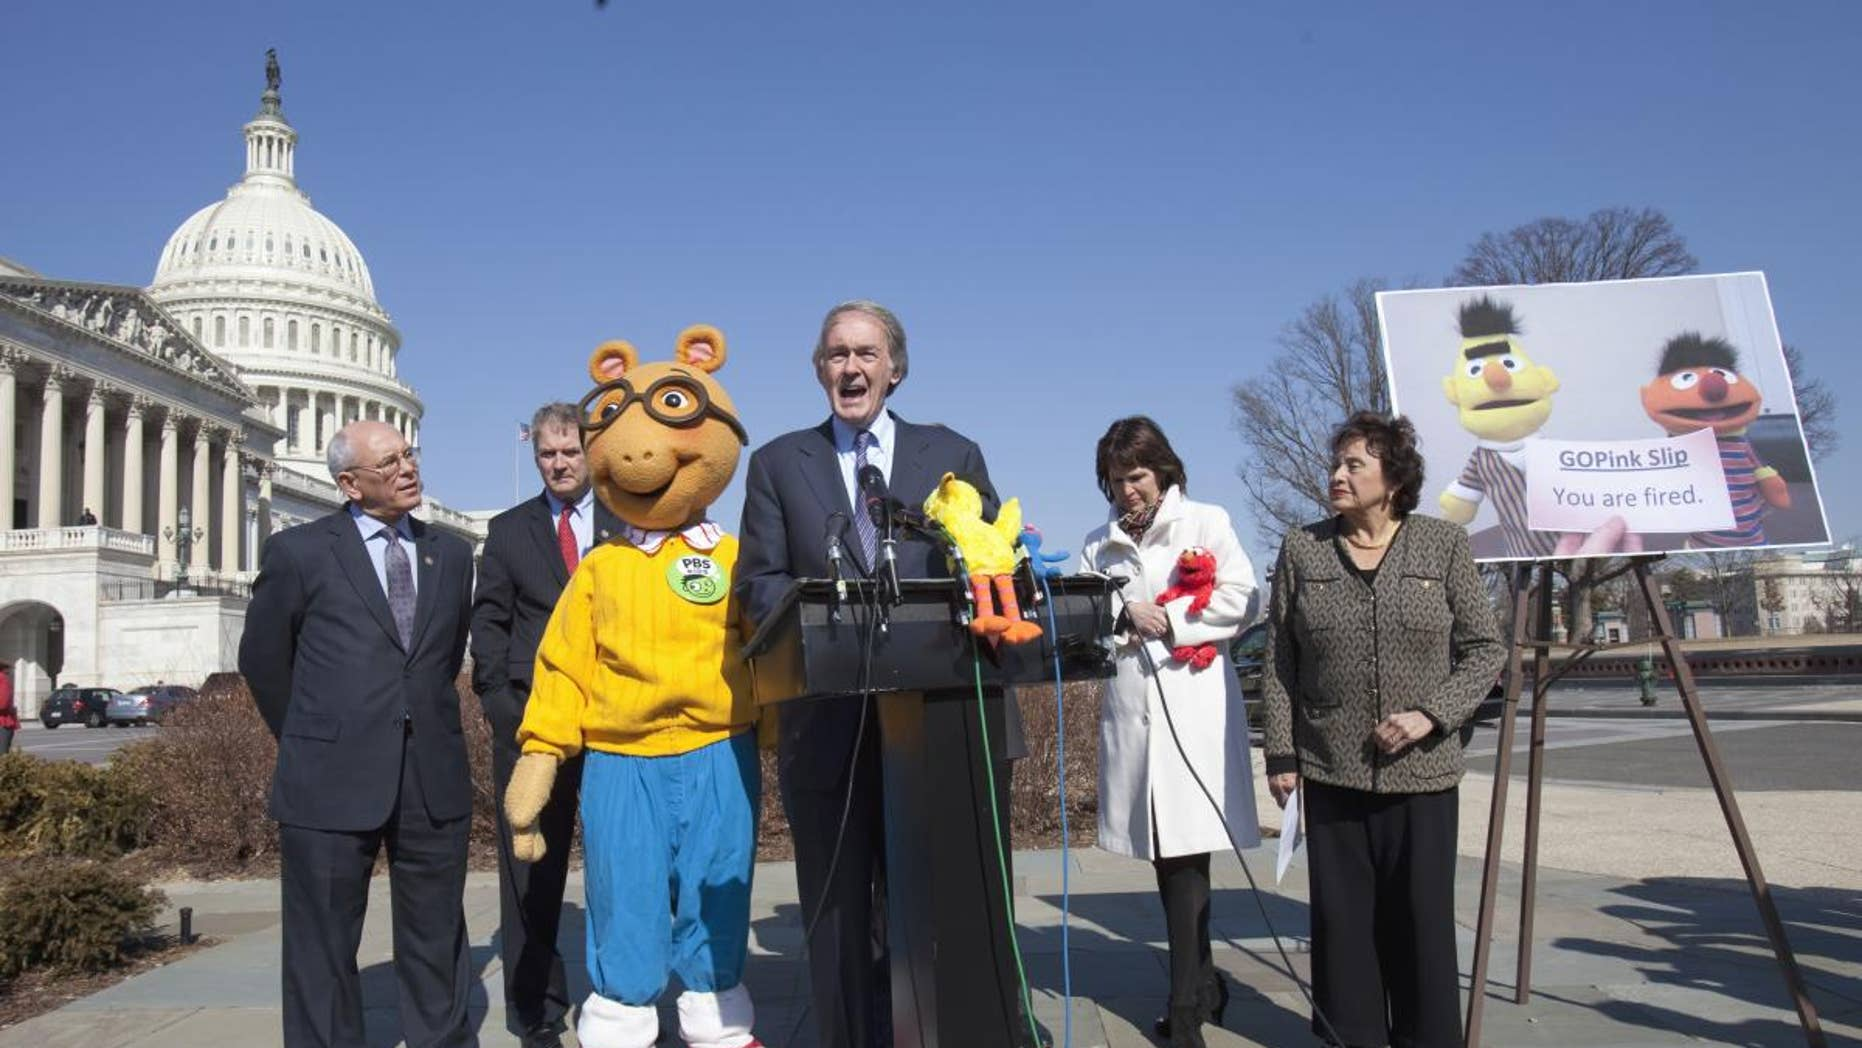 Rep. Ed Markey, D-Mass., center, accompanied by, from left, Rep. Paul Tonko, D-N.Y., Rep. Bill Owens, D-N.Y., Arthur the Aardvark, Rep. Betty McCollum, D-Minn., and Rep. Nita Lowey, D-N.Y., speaks during news conference on Capitol Hill in Washington on Wednesday, Feb. 16, 2011, to discuss the future of Public Broadcasting. (AP Photo/Harry Hamburg)